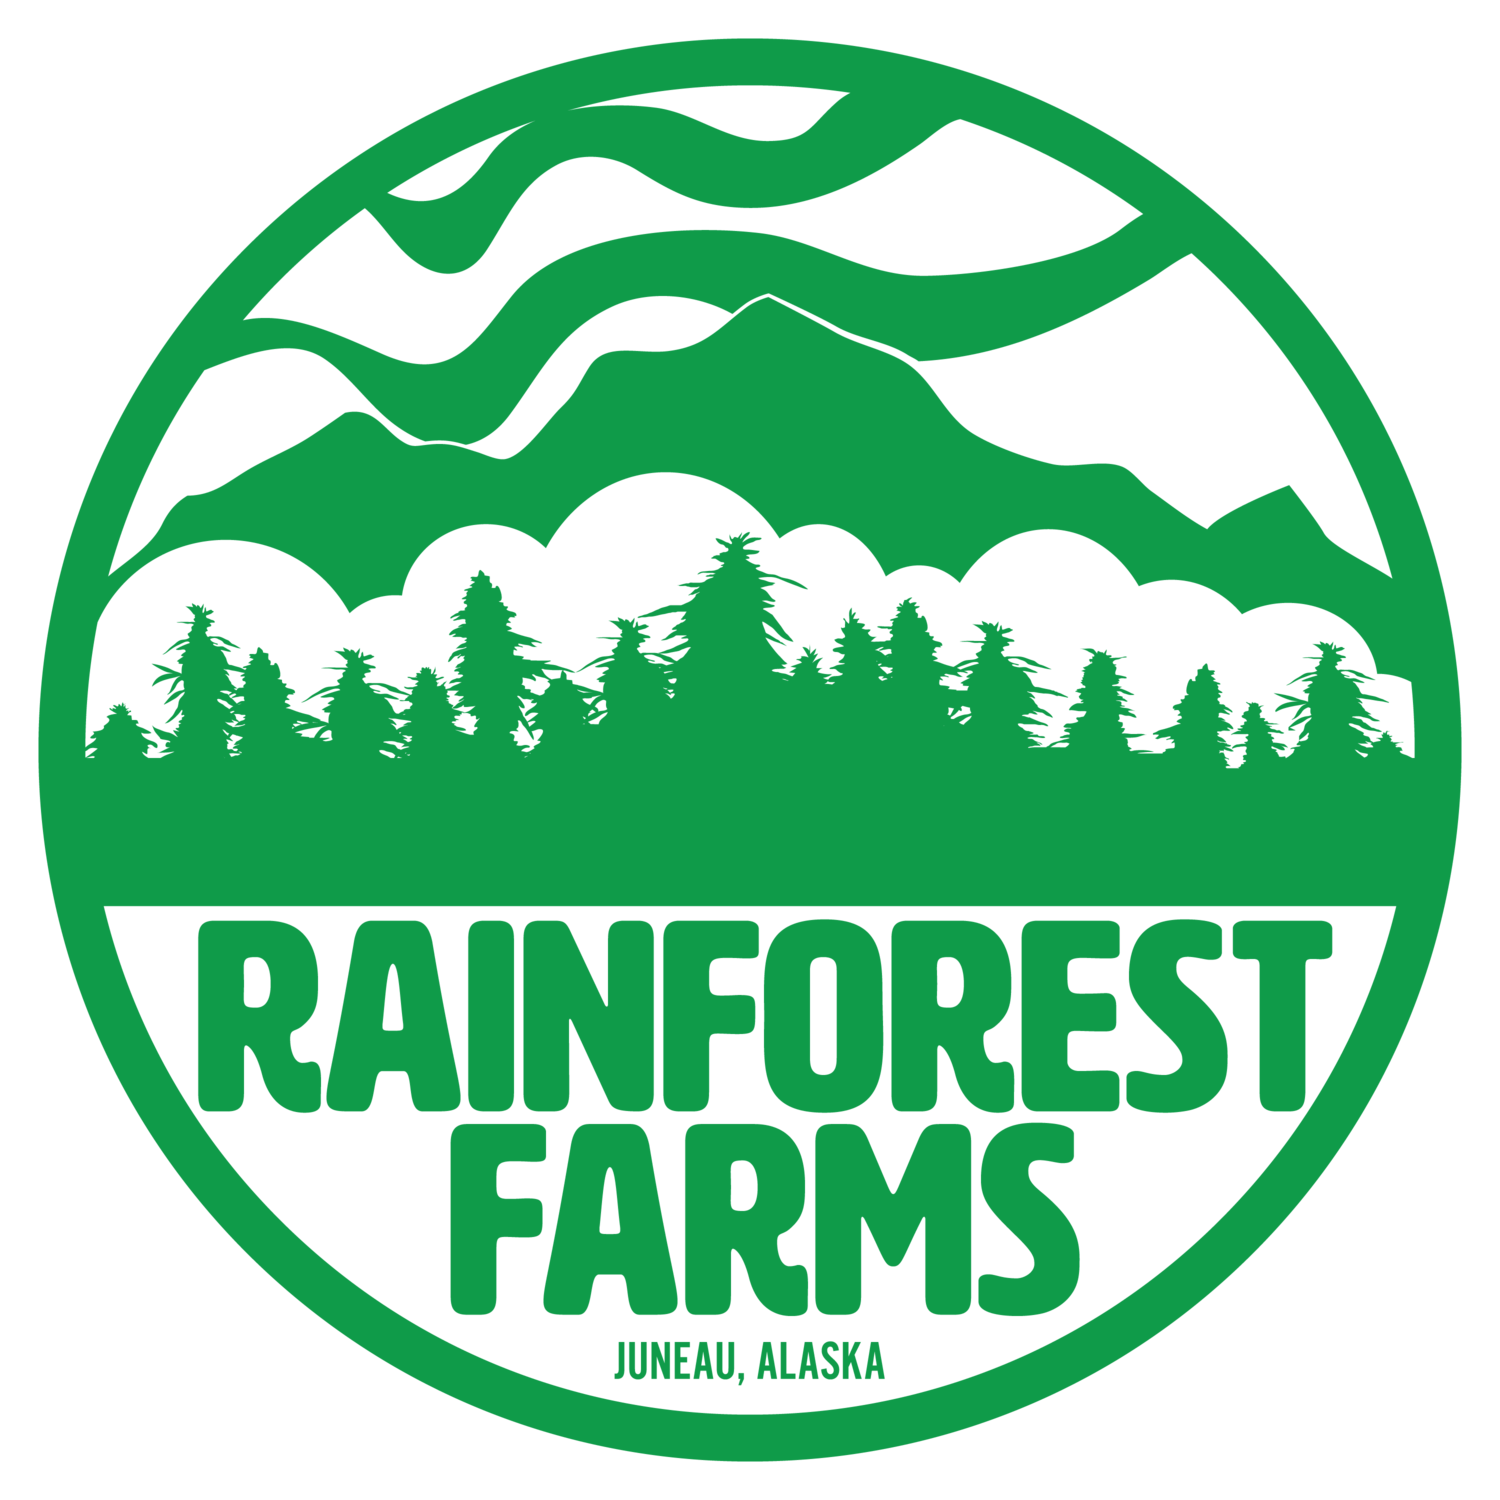 Rainforest Farms